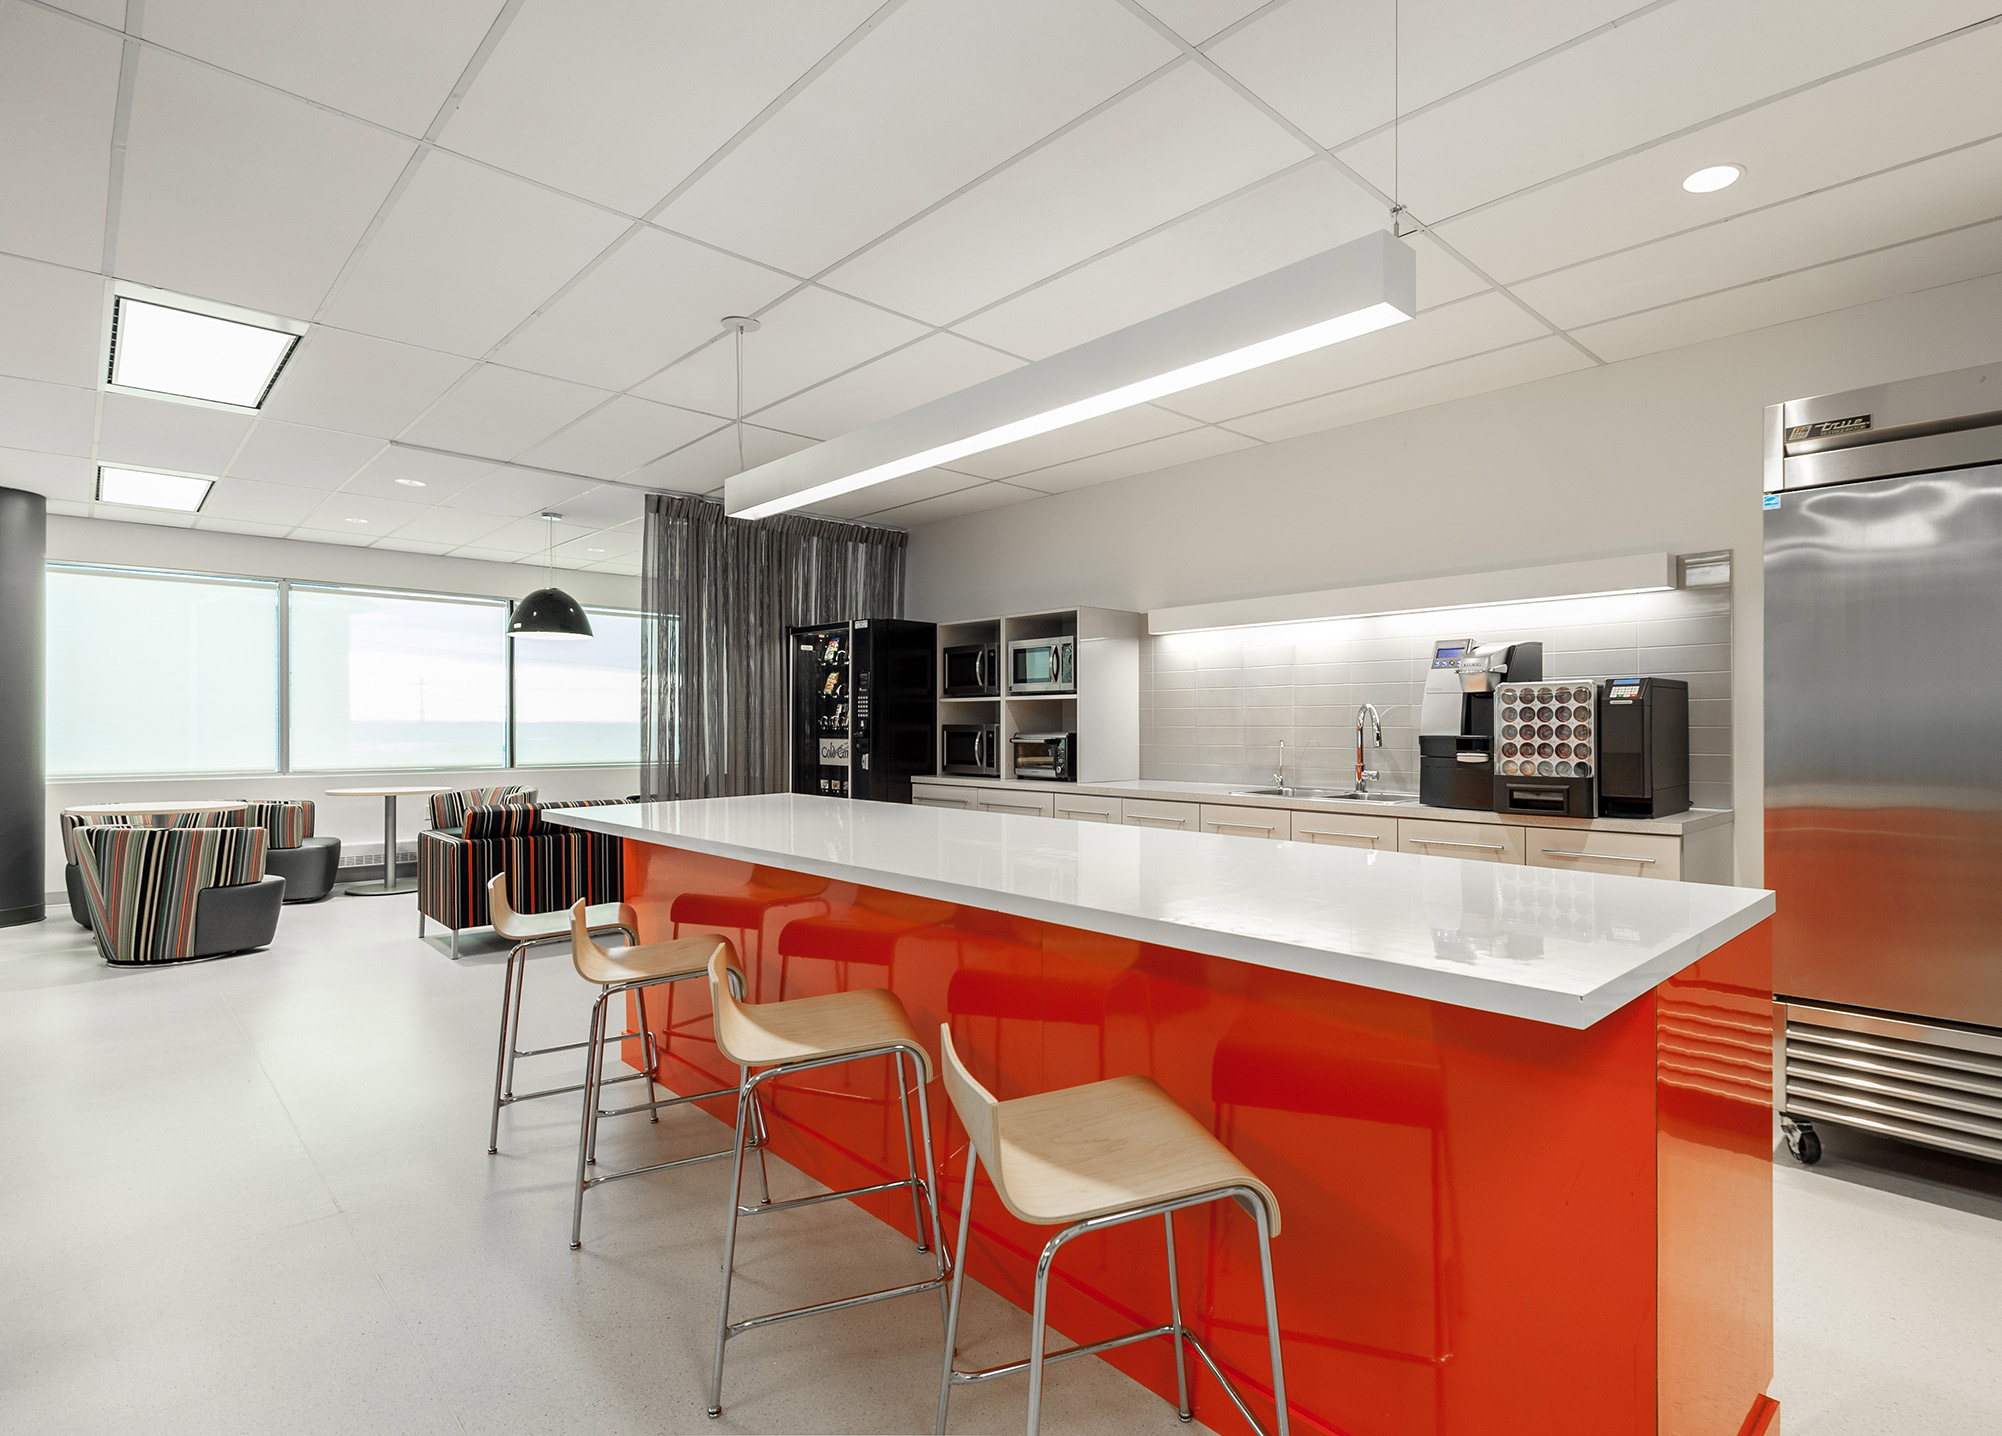 interior-design-aviation-office-kitchen-island.jpg